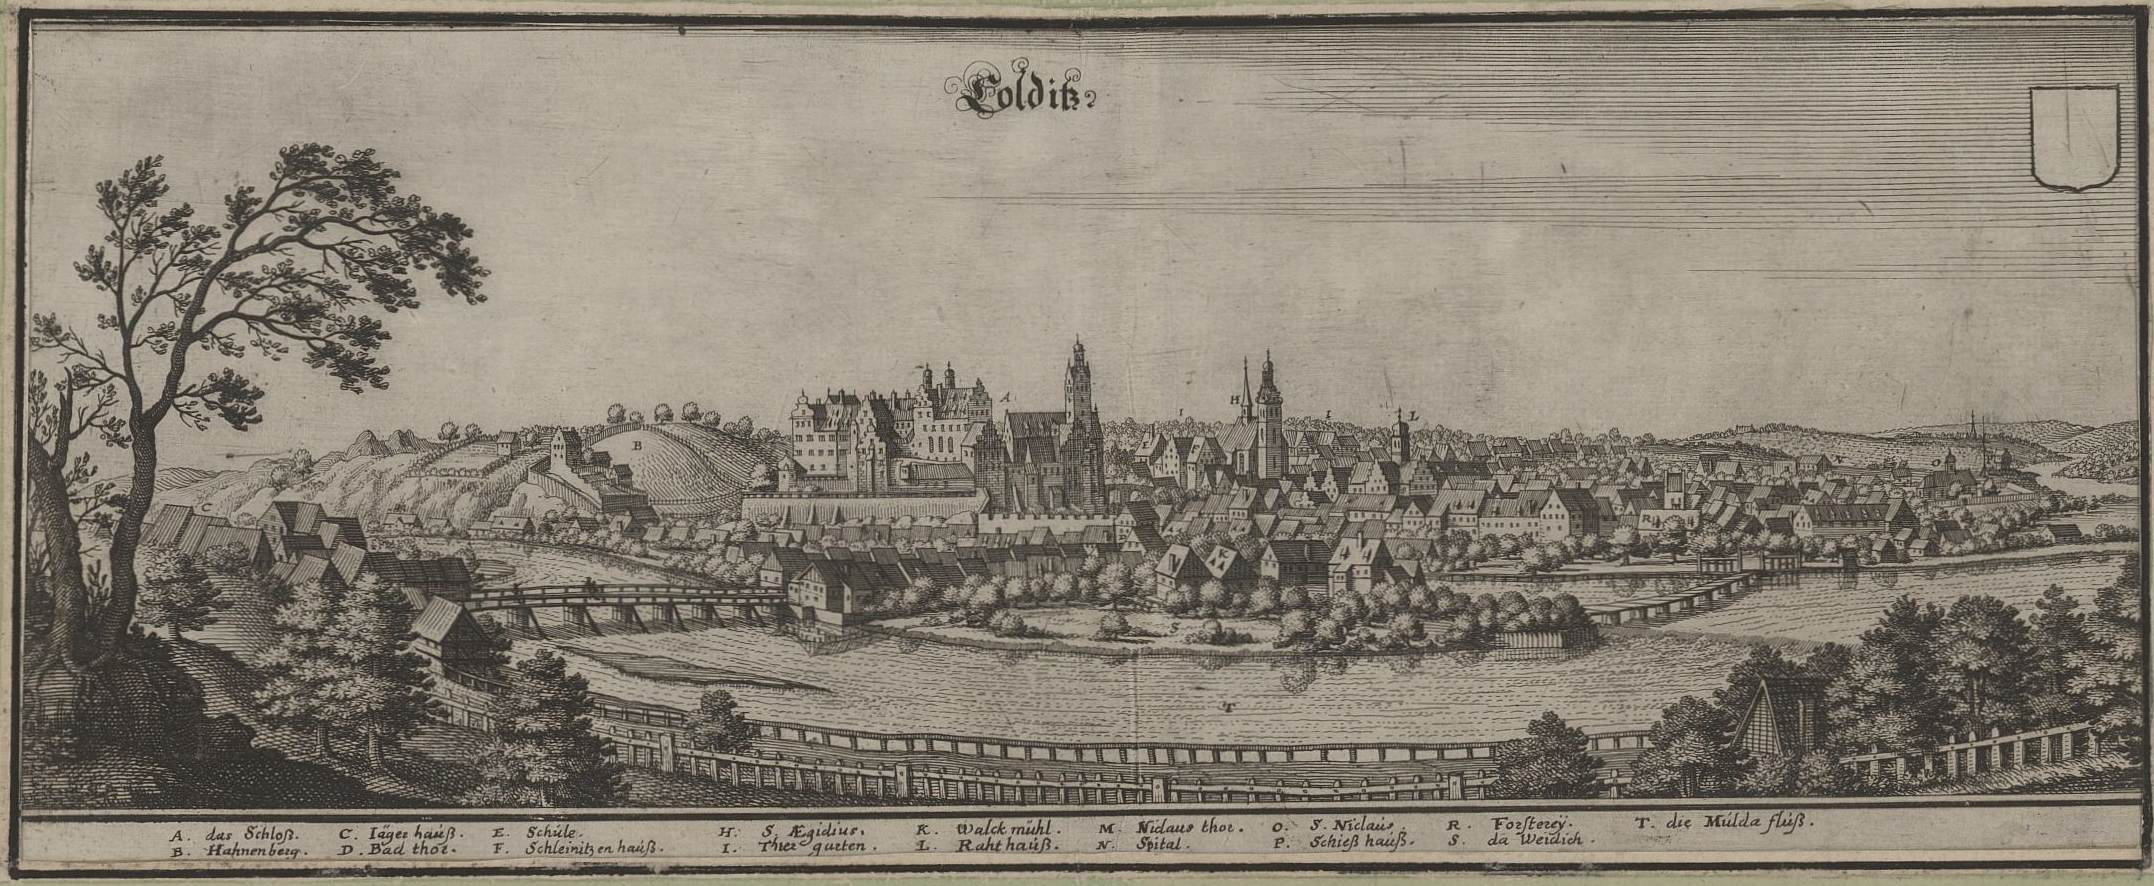 File:Colditz 1650.jpg